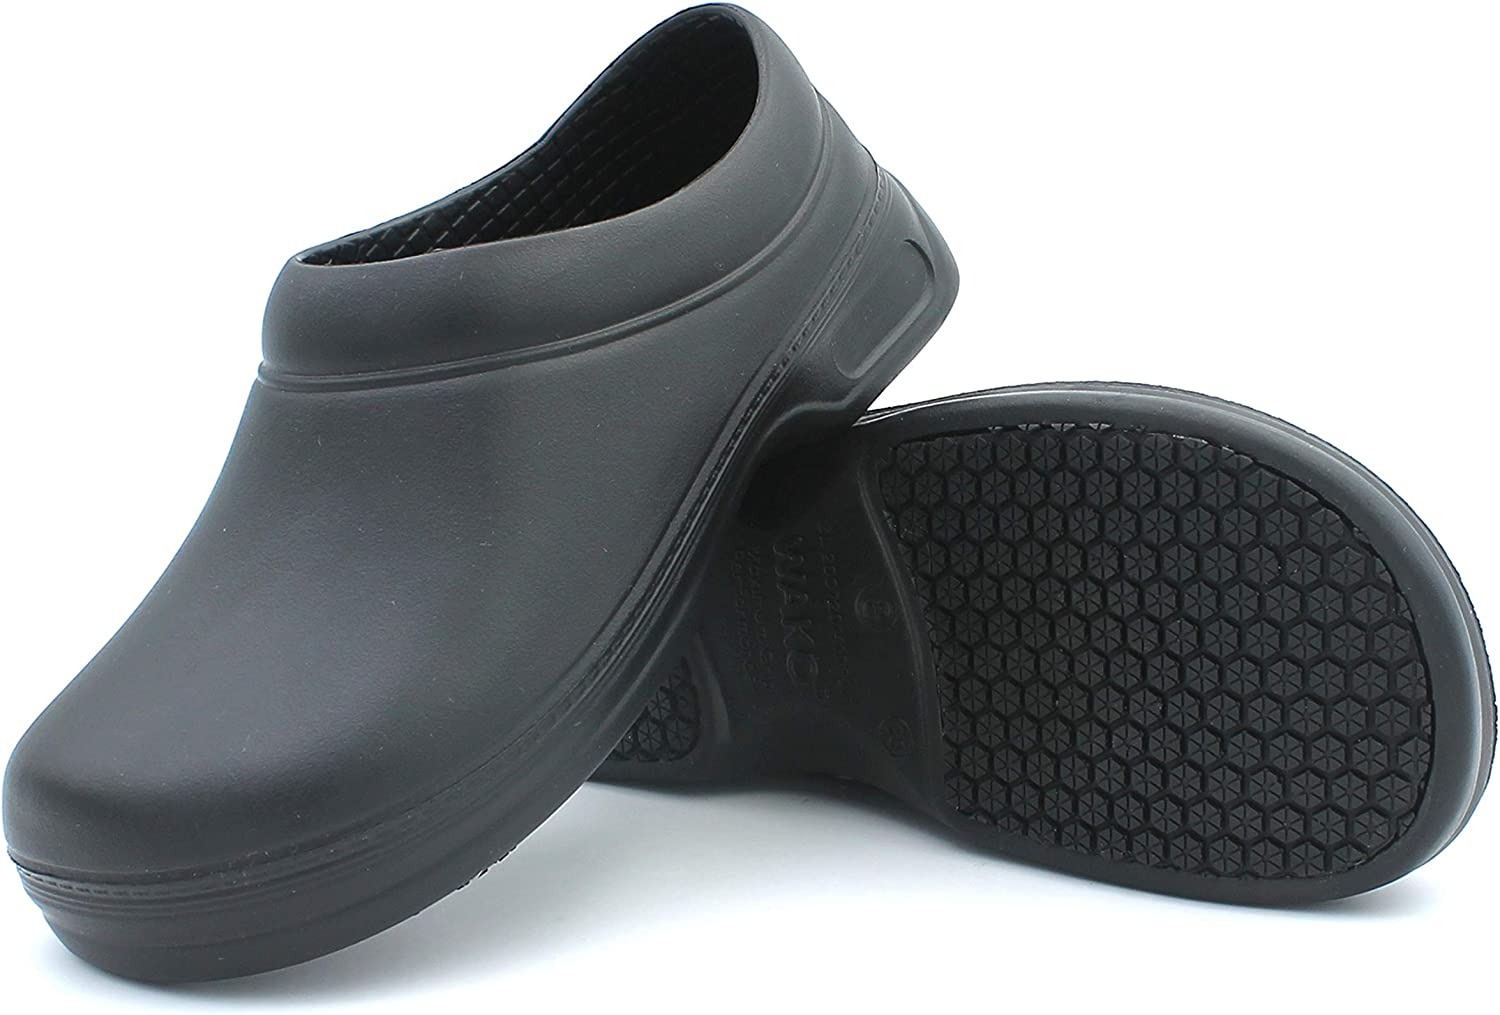 Women's Slip-Resistant Working Clogs Mules Flats shoes Non-Slip Waterproof Oil-Resistant Nurse